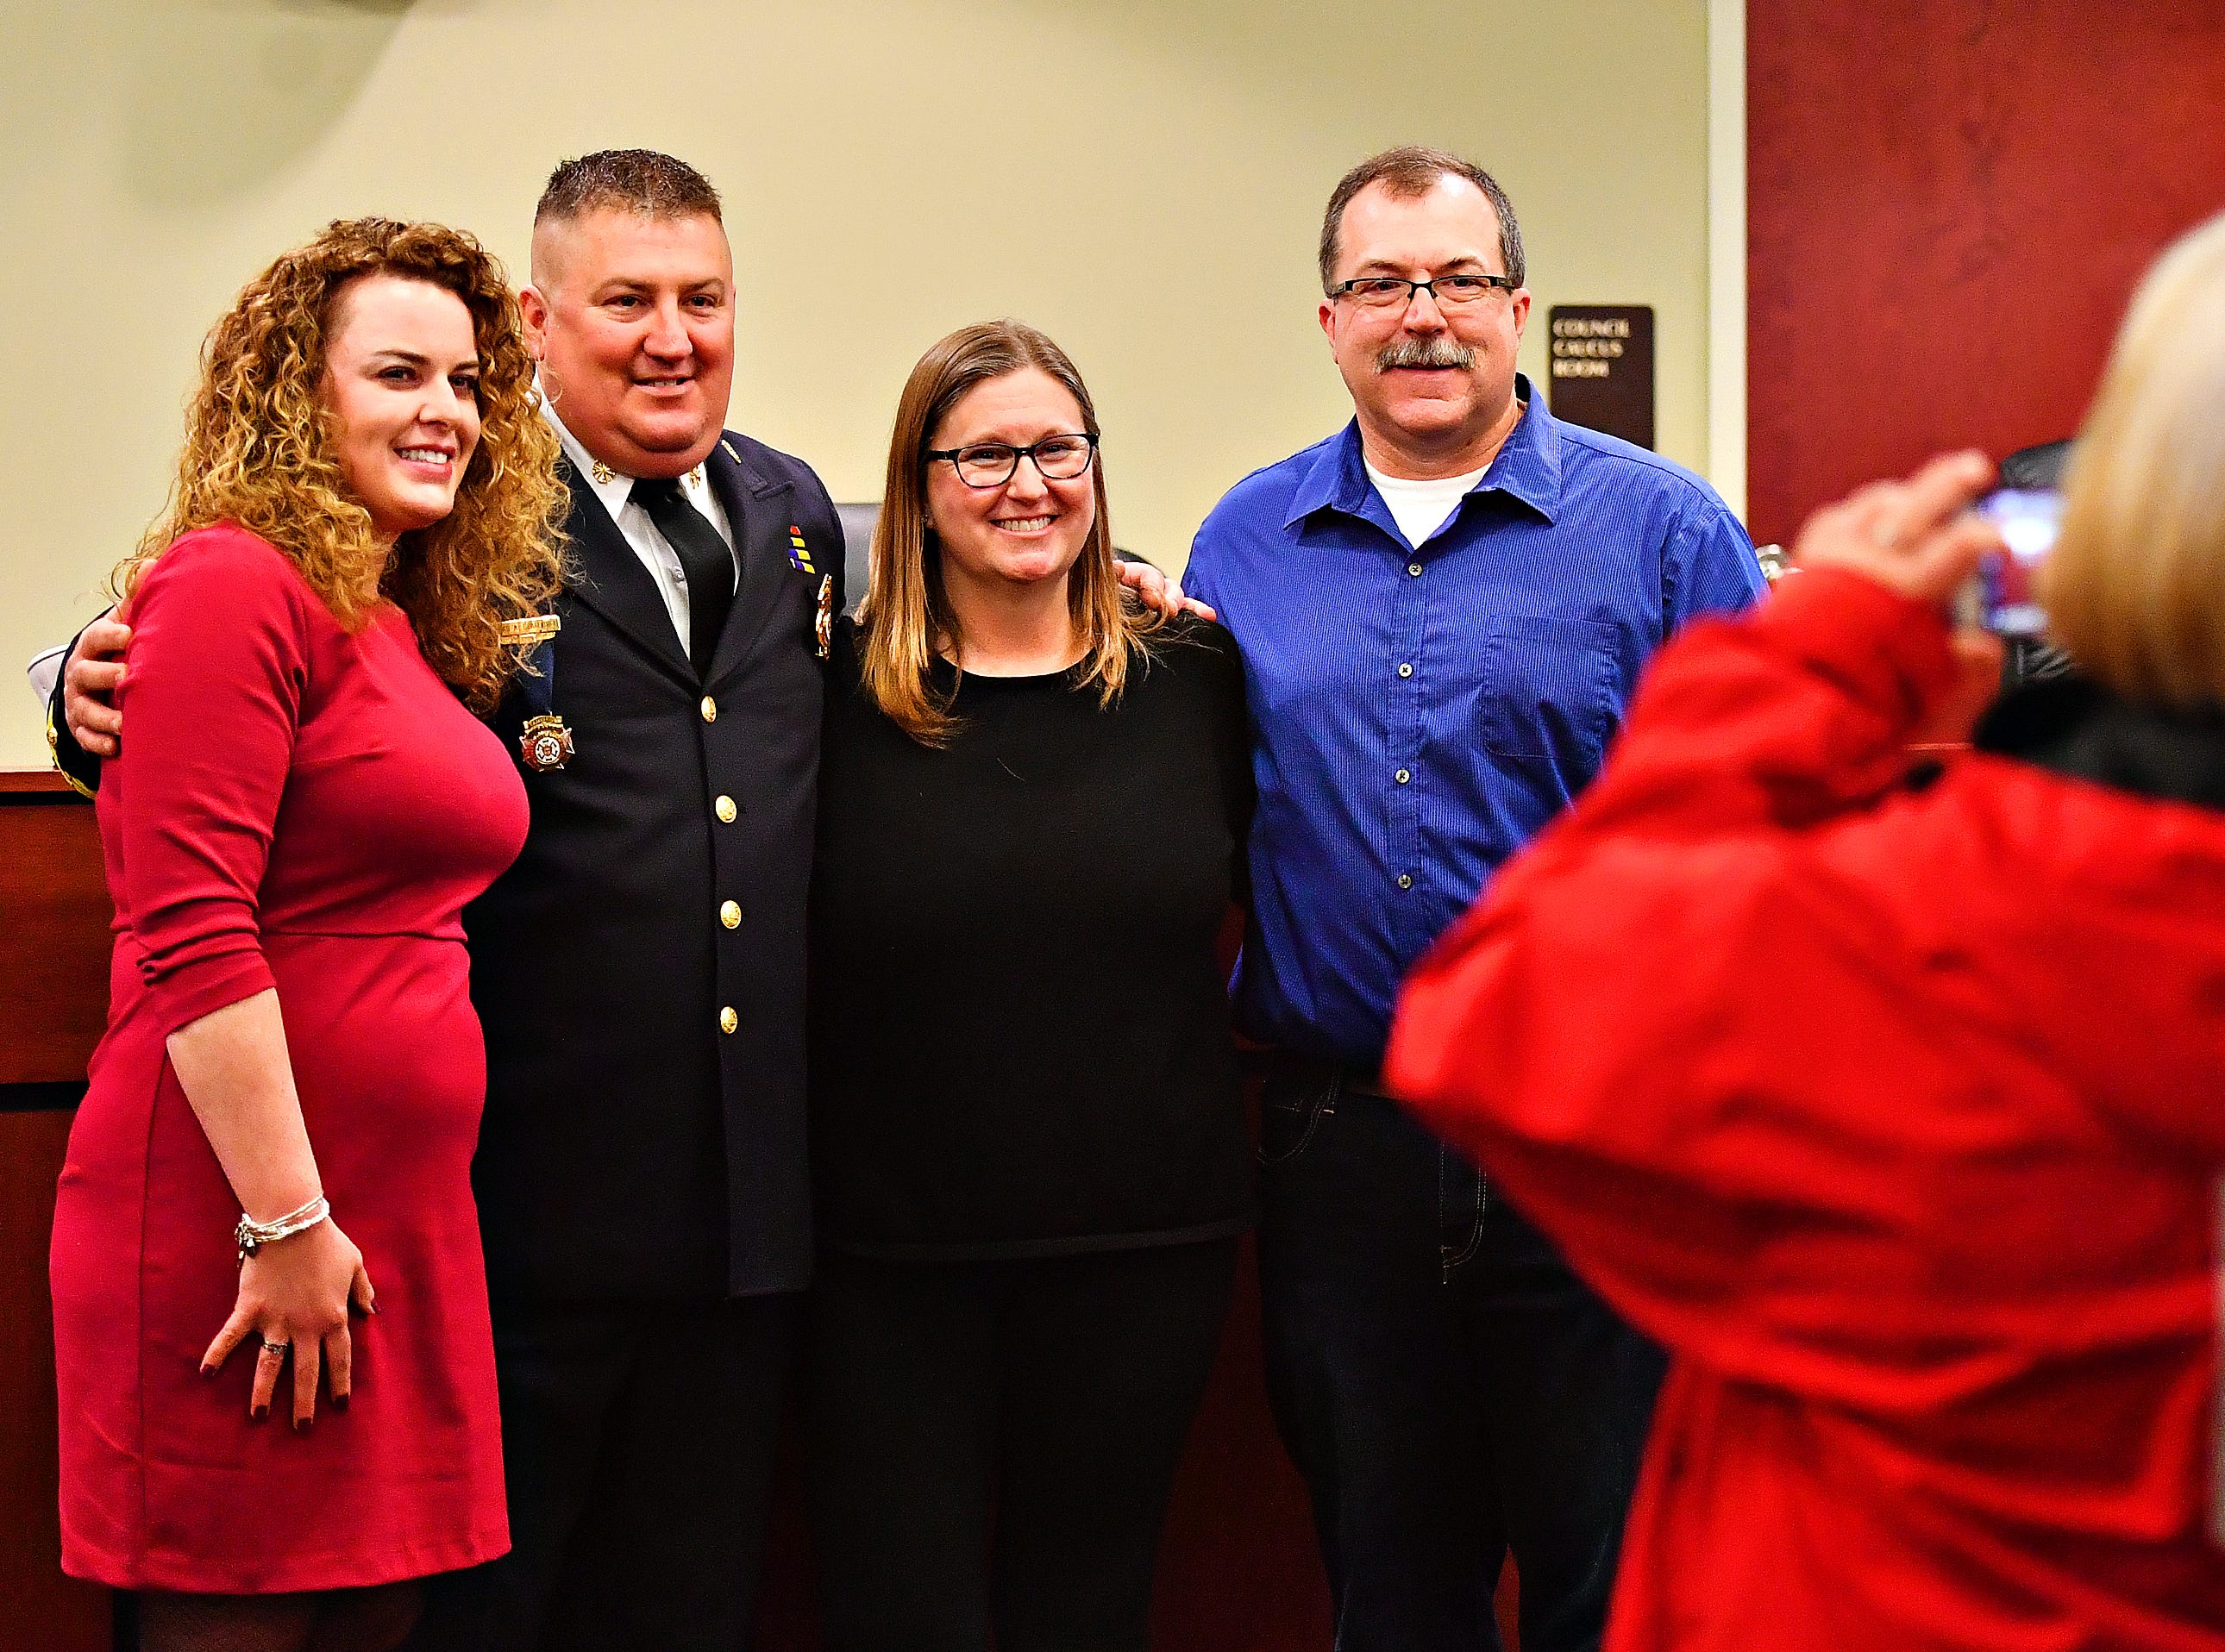 From left, Jess Deardorff, newly sworn in York City Fire Chief Chad Deardorff, Barb Michaels and retired York City Fire Chief David Michaels pose for a photo following Deardorff's swearing-in ceremony at York City Hall in York City, Friday, March 8, 2019. Dawn J. Sagert photo